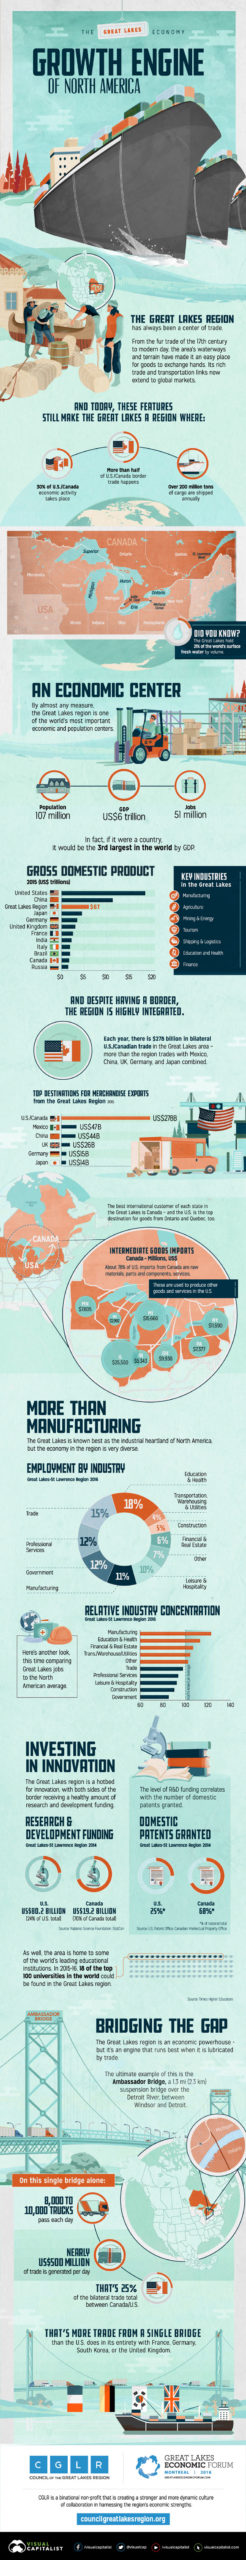 infographic the great akes economy